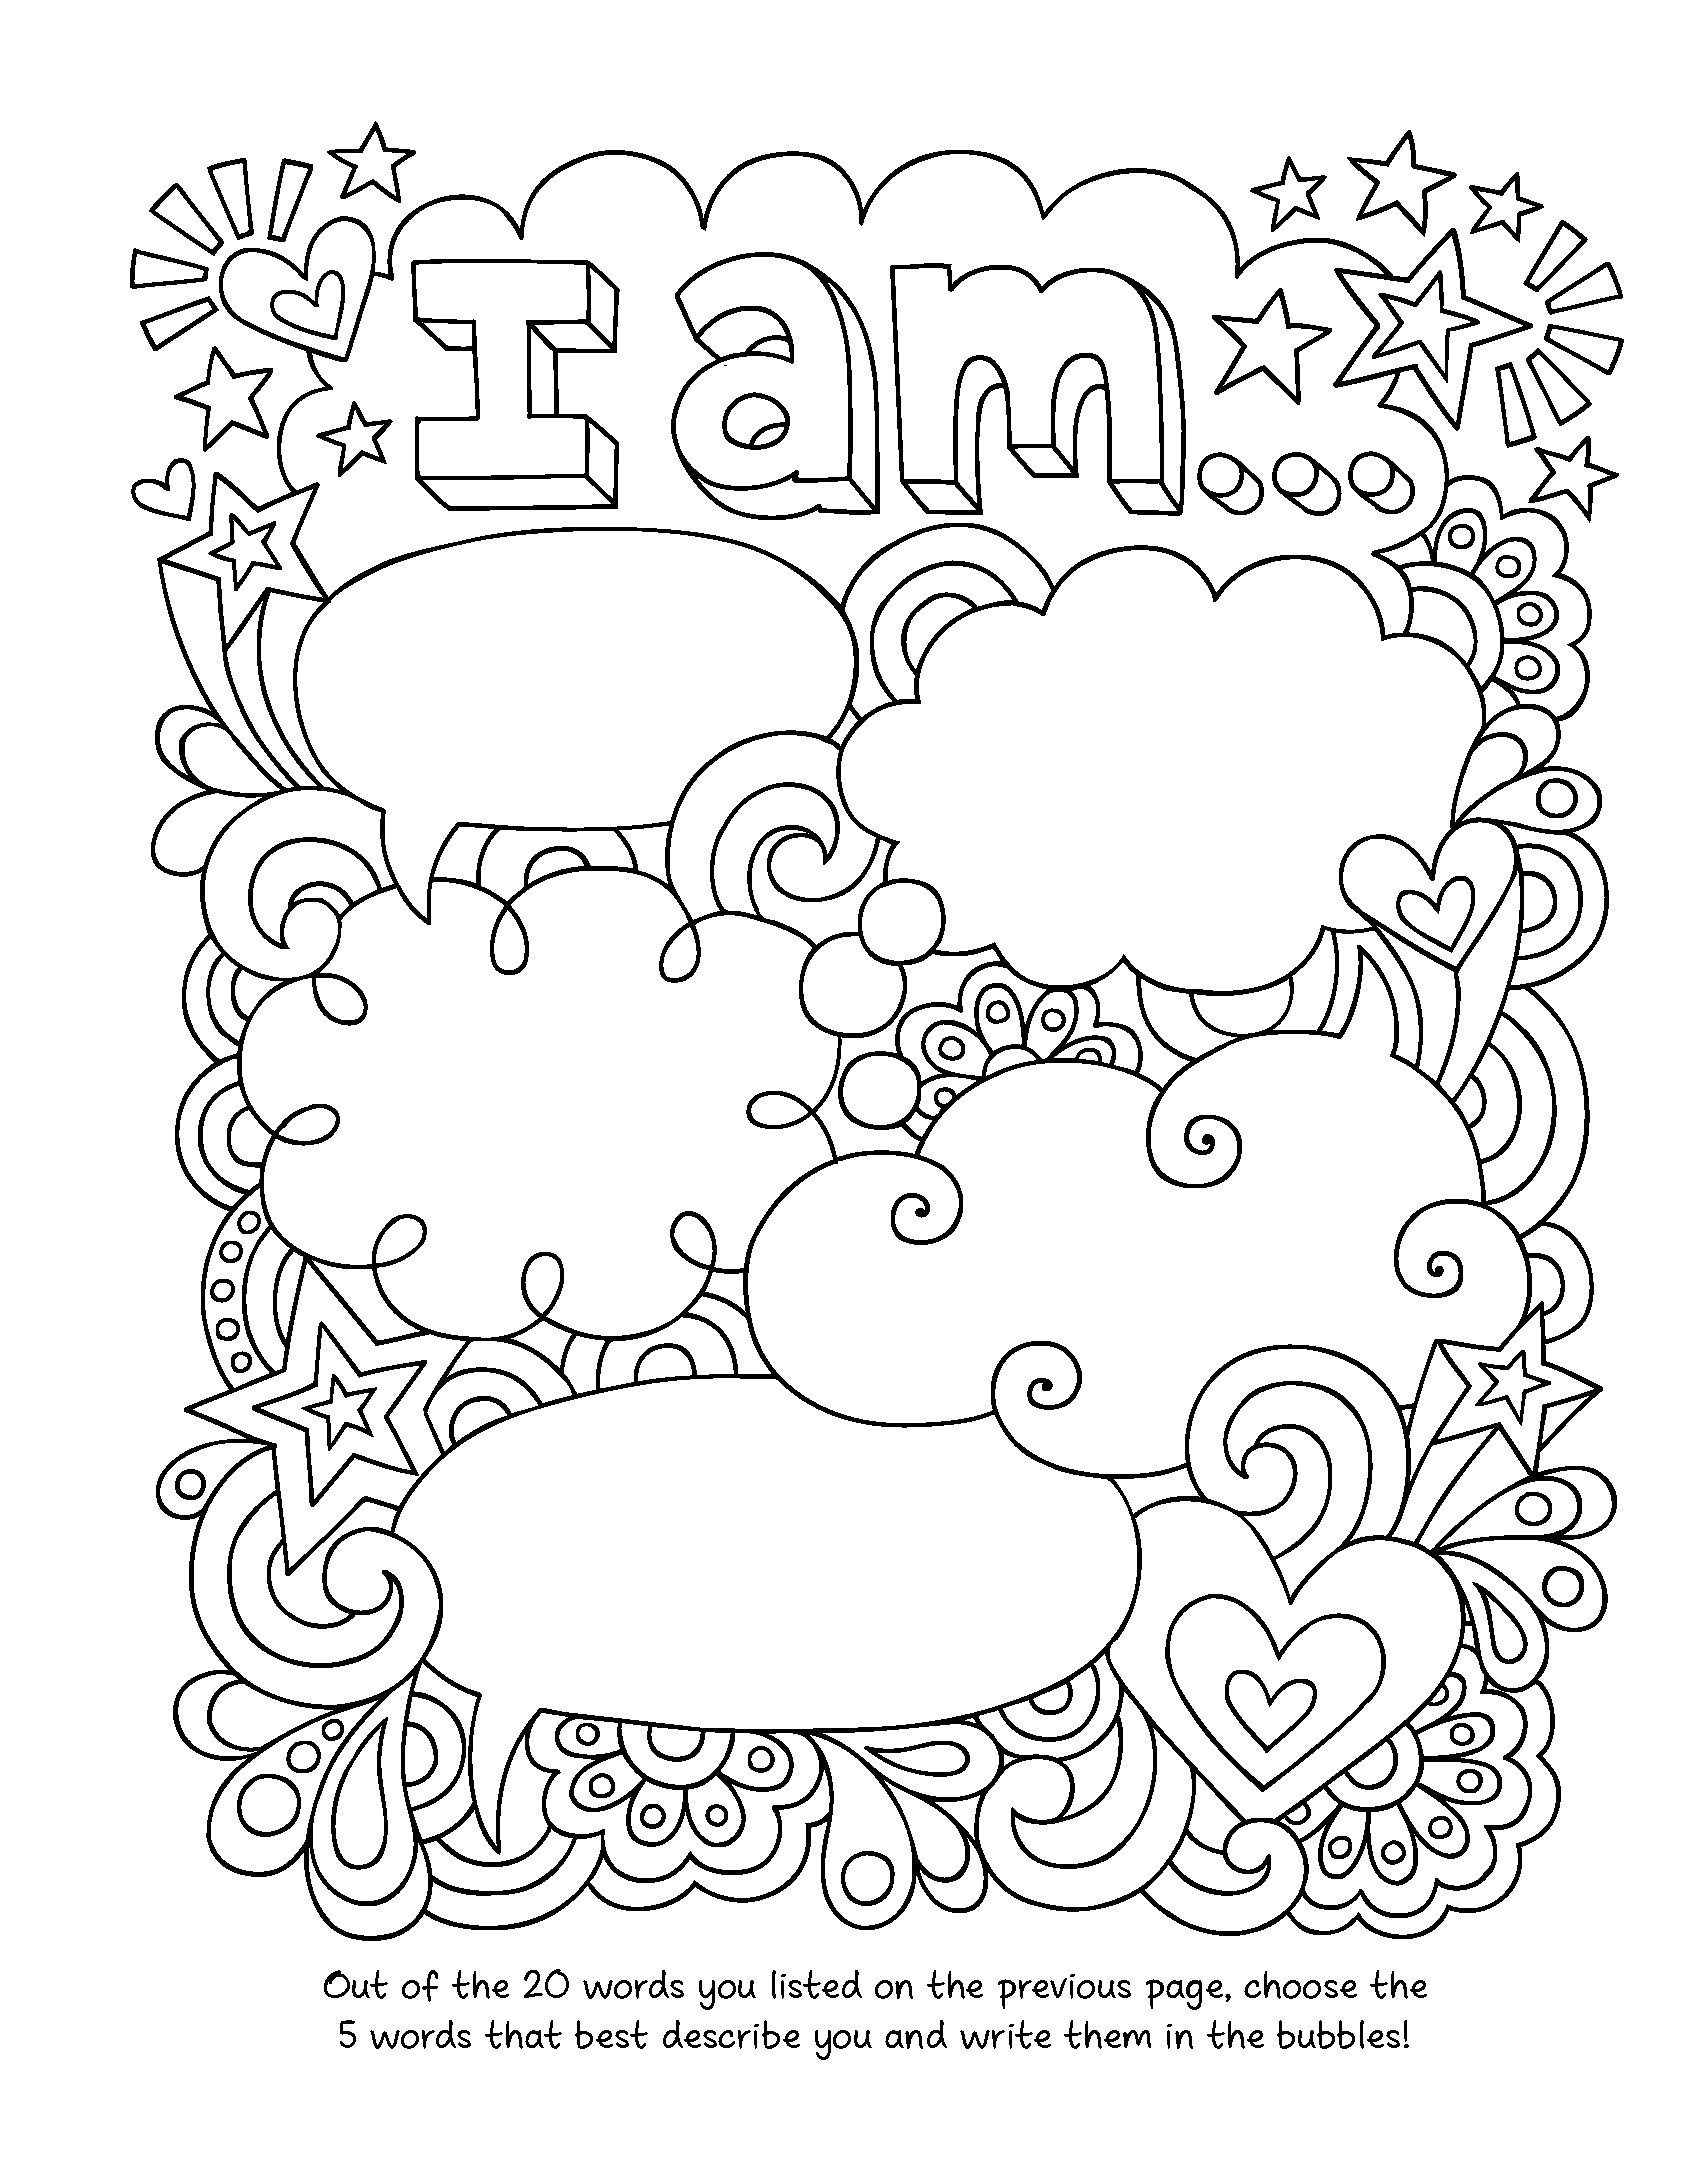 Notebook Doodles Go Girl Coloring  Activity Book Design